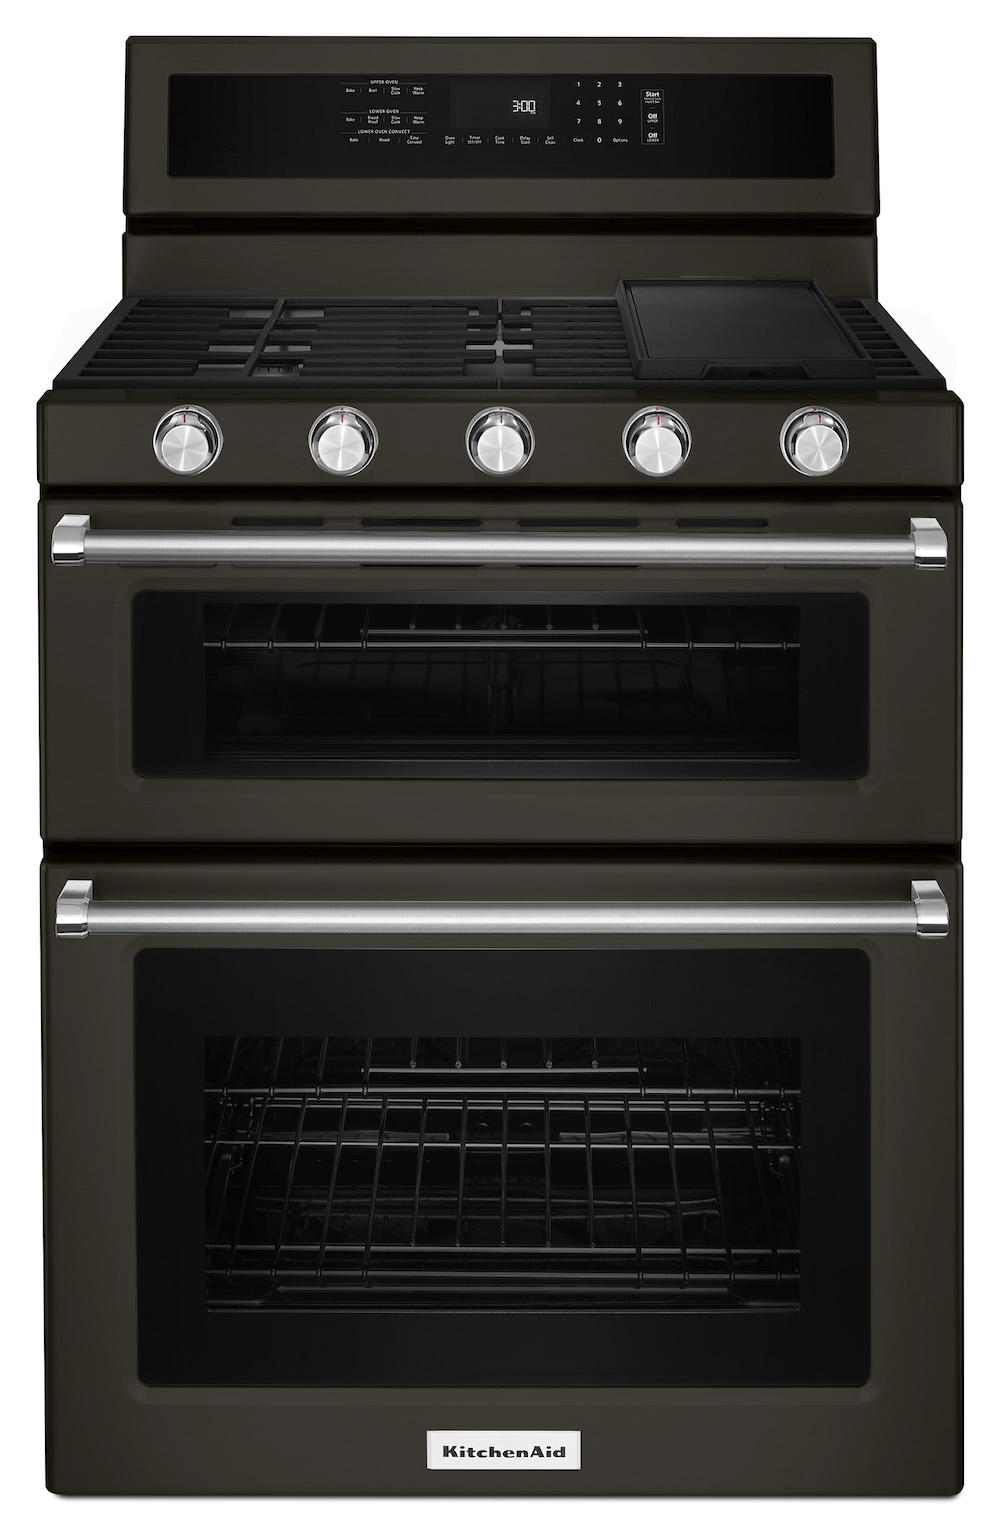 Kitchenaid's matte black freestanding range stove